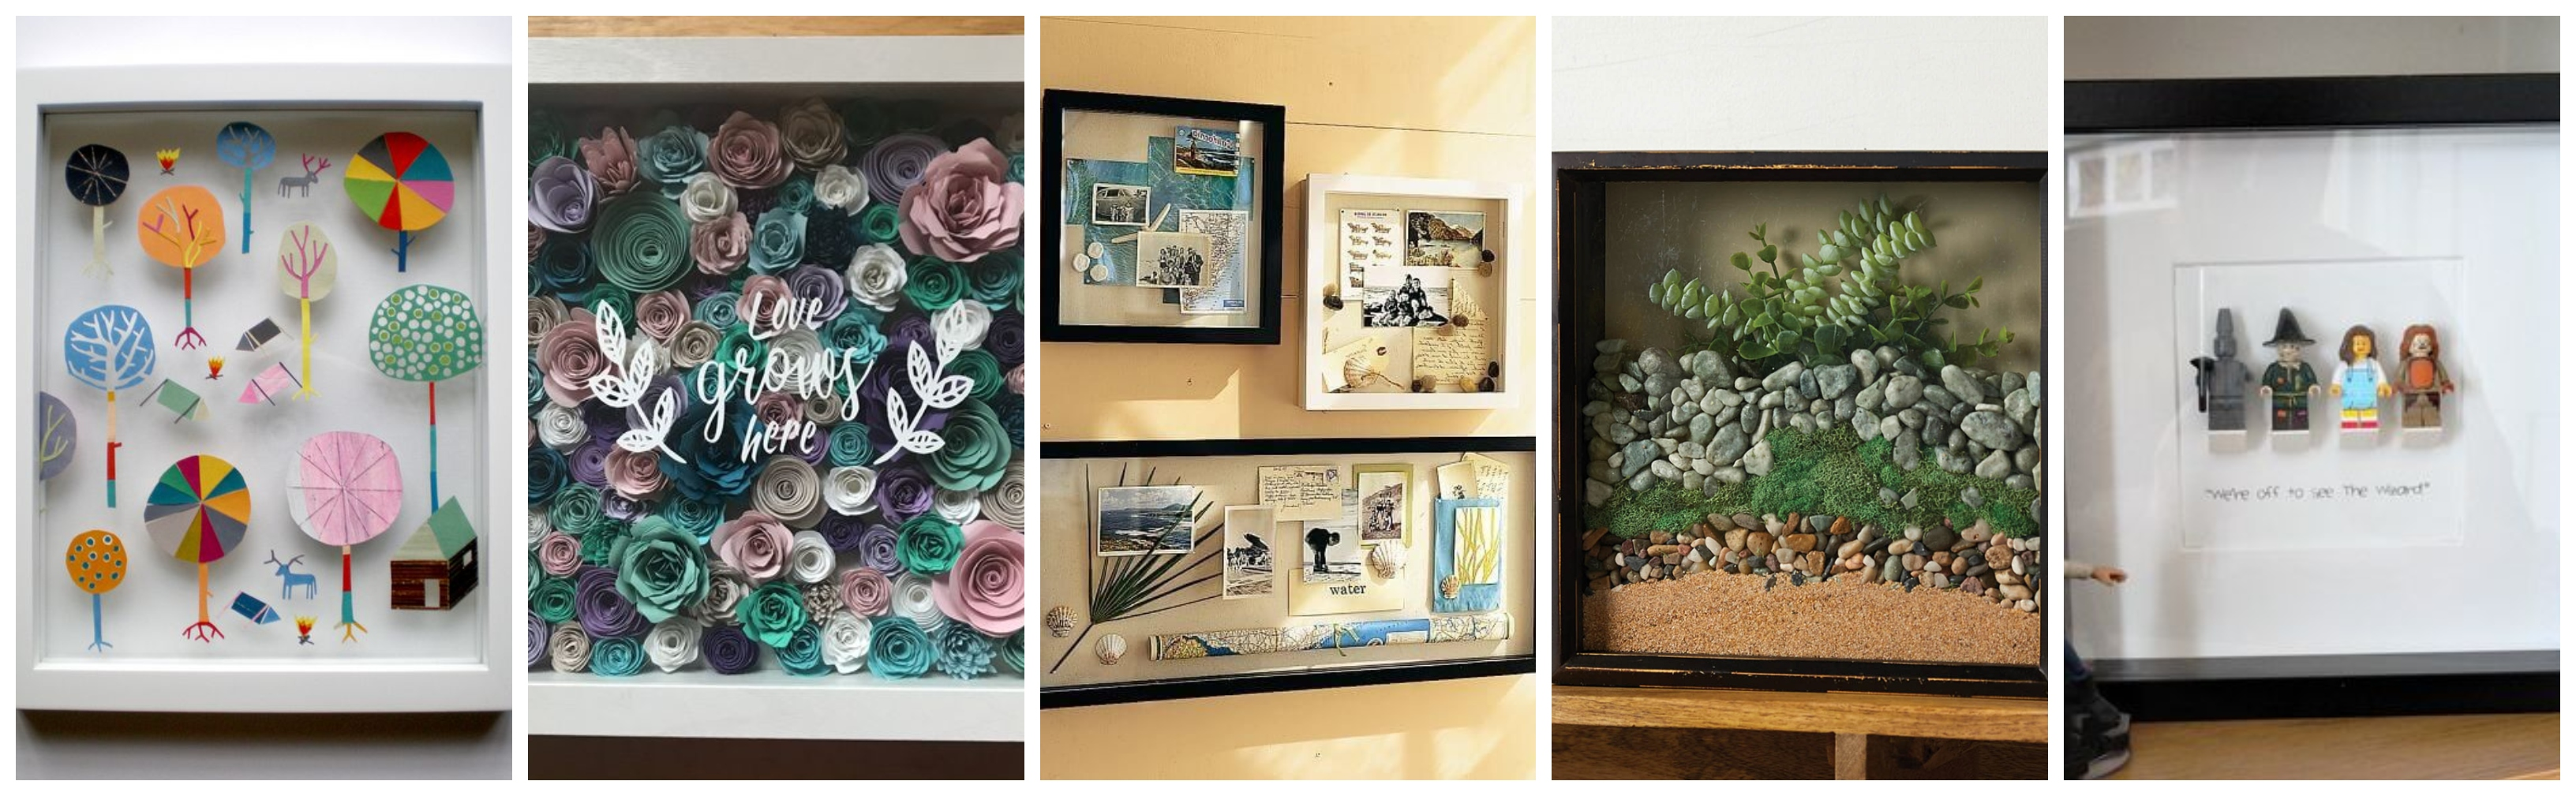 Creative Shadow Box Ideas To Inspire Your Next Project